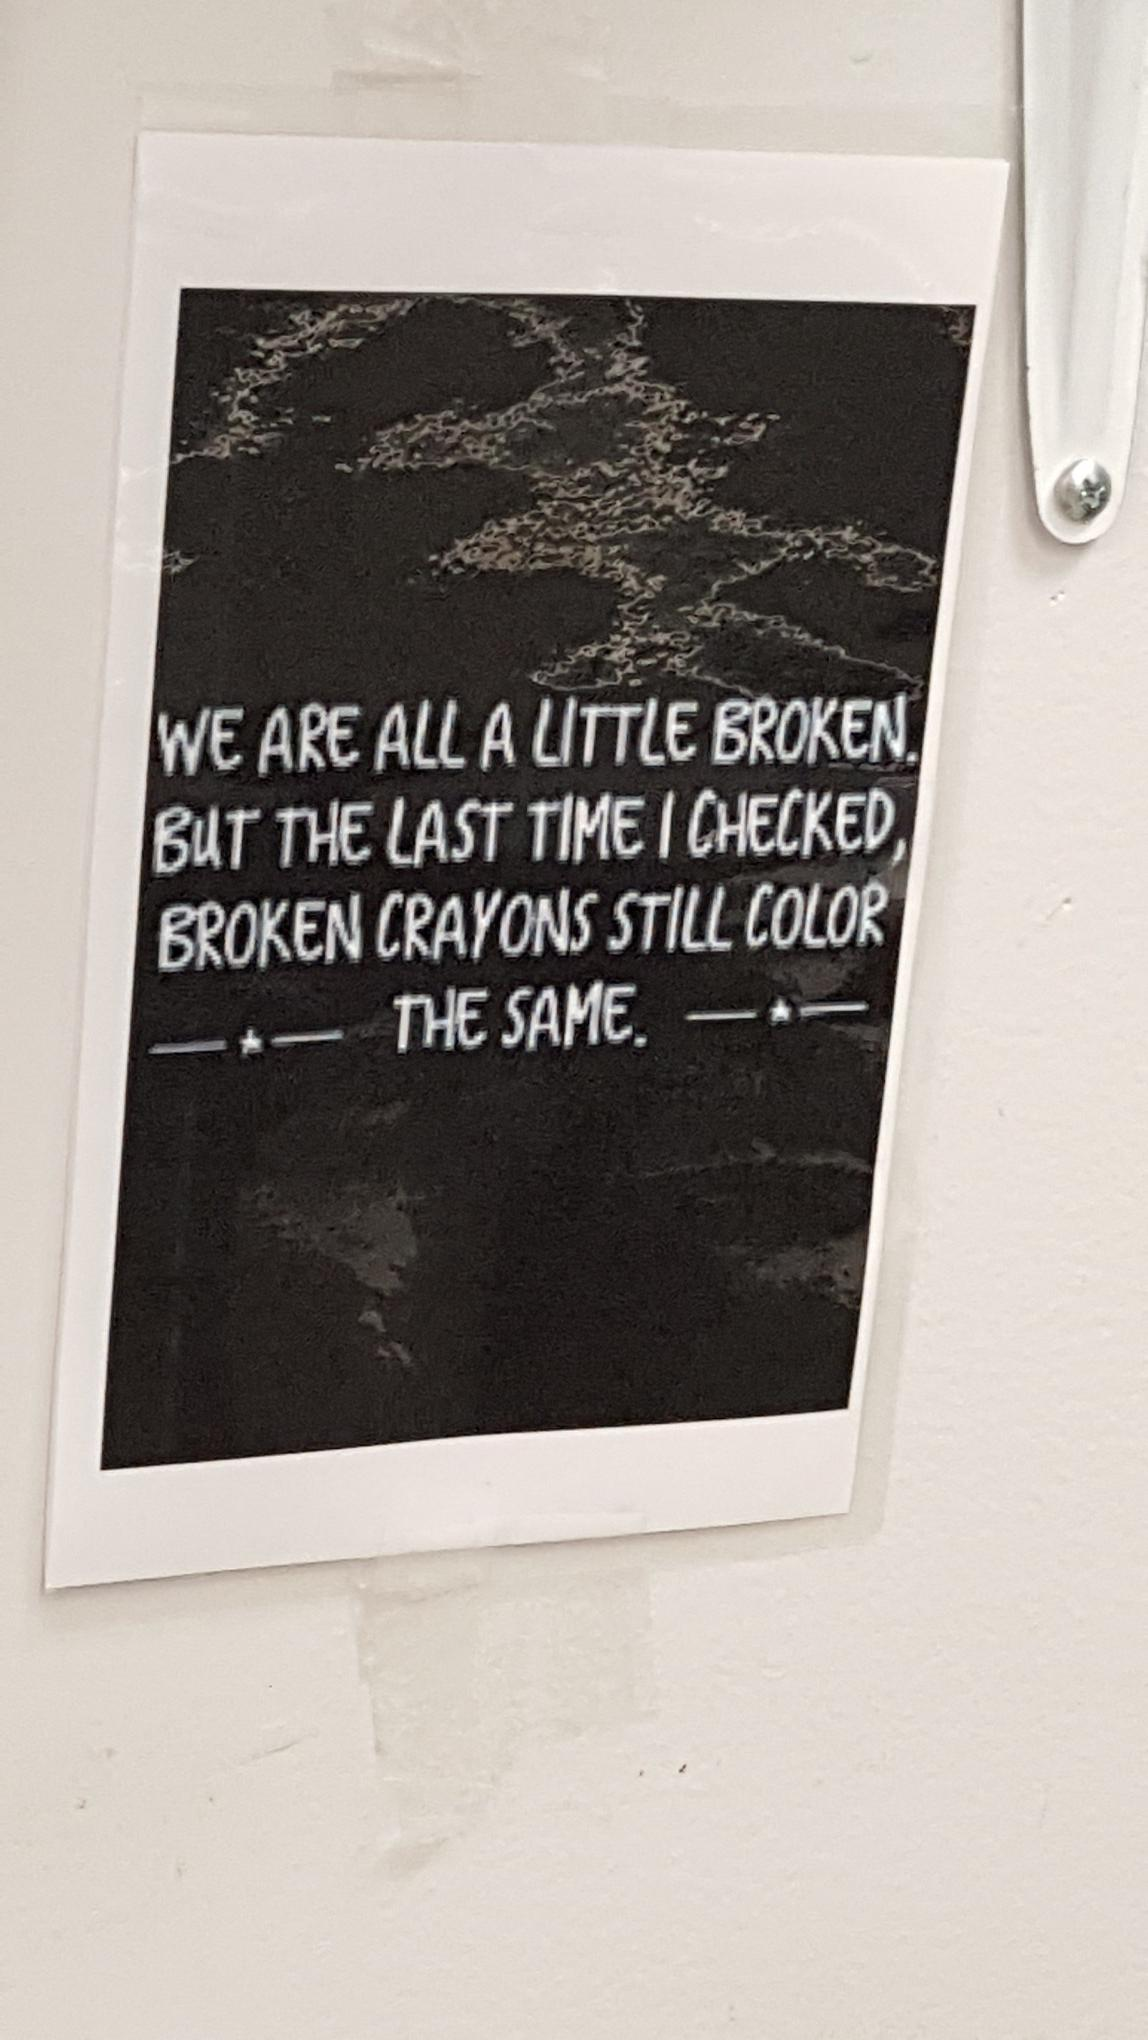 [Image] We are all a little broken